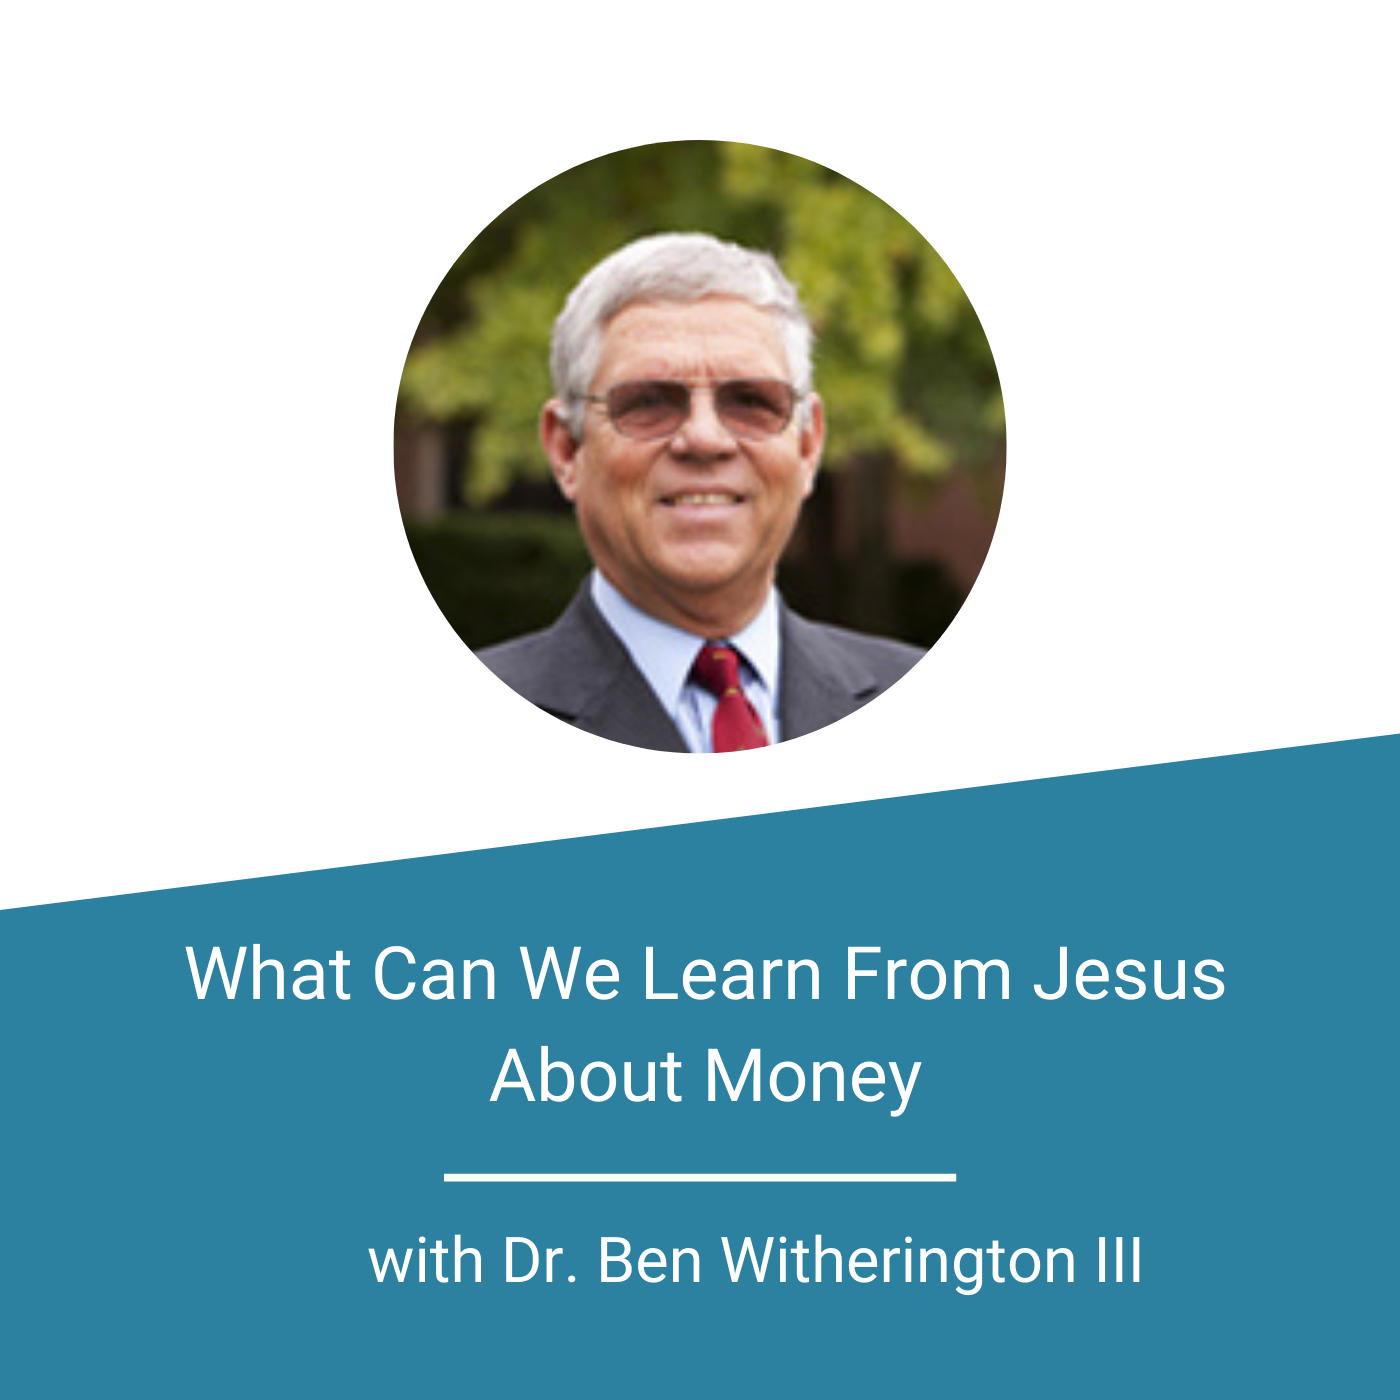 Featured Image - Dr. Ben Witherington III